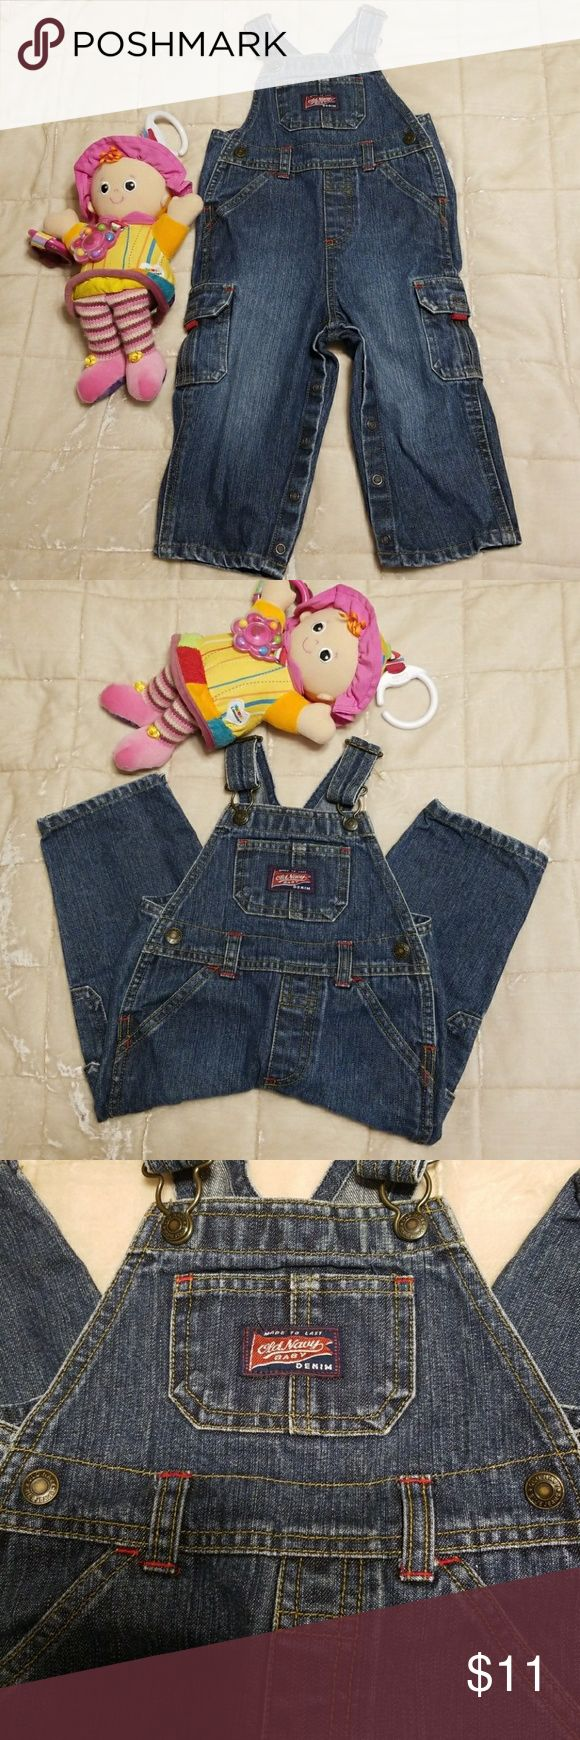 🚼Old Navy Baby Overalls 18-24 months Beautiful in perfect condition well loved  old navy overalls.   ♥️🎉BUNDLE THIS LISTING WITH 4 MORE BABY ITEMS AND GET IT FOR $5 EACH LISTING🎉♥️  ❤EVERY ITEM WITH🚼SYMBOL YOU WILL ONLY PAY $5 WHEN YOU BUNDLE 5 ITEMS OR MORE.❤  Doll is not included😉 Old Navy One Pieces #BabyOveralls